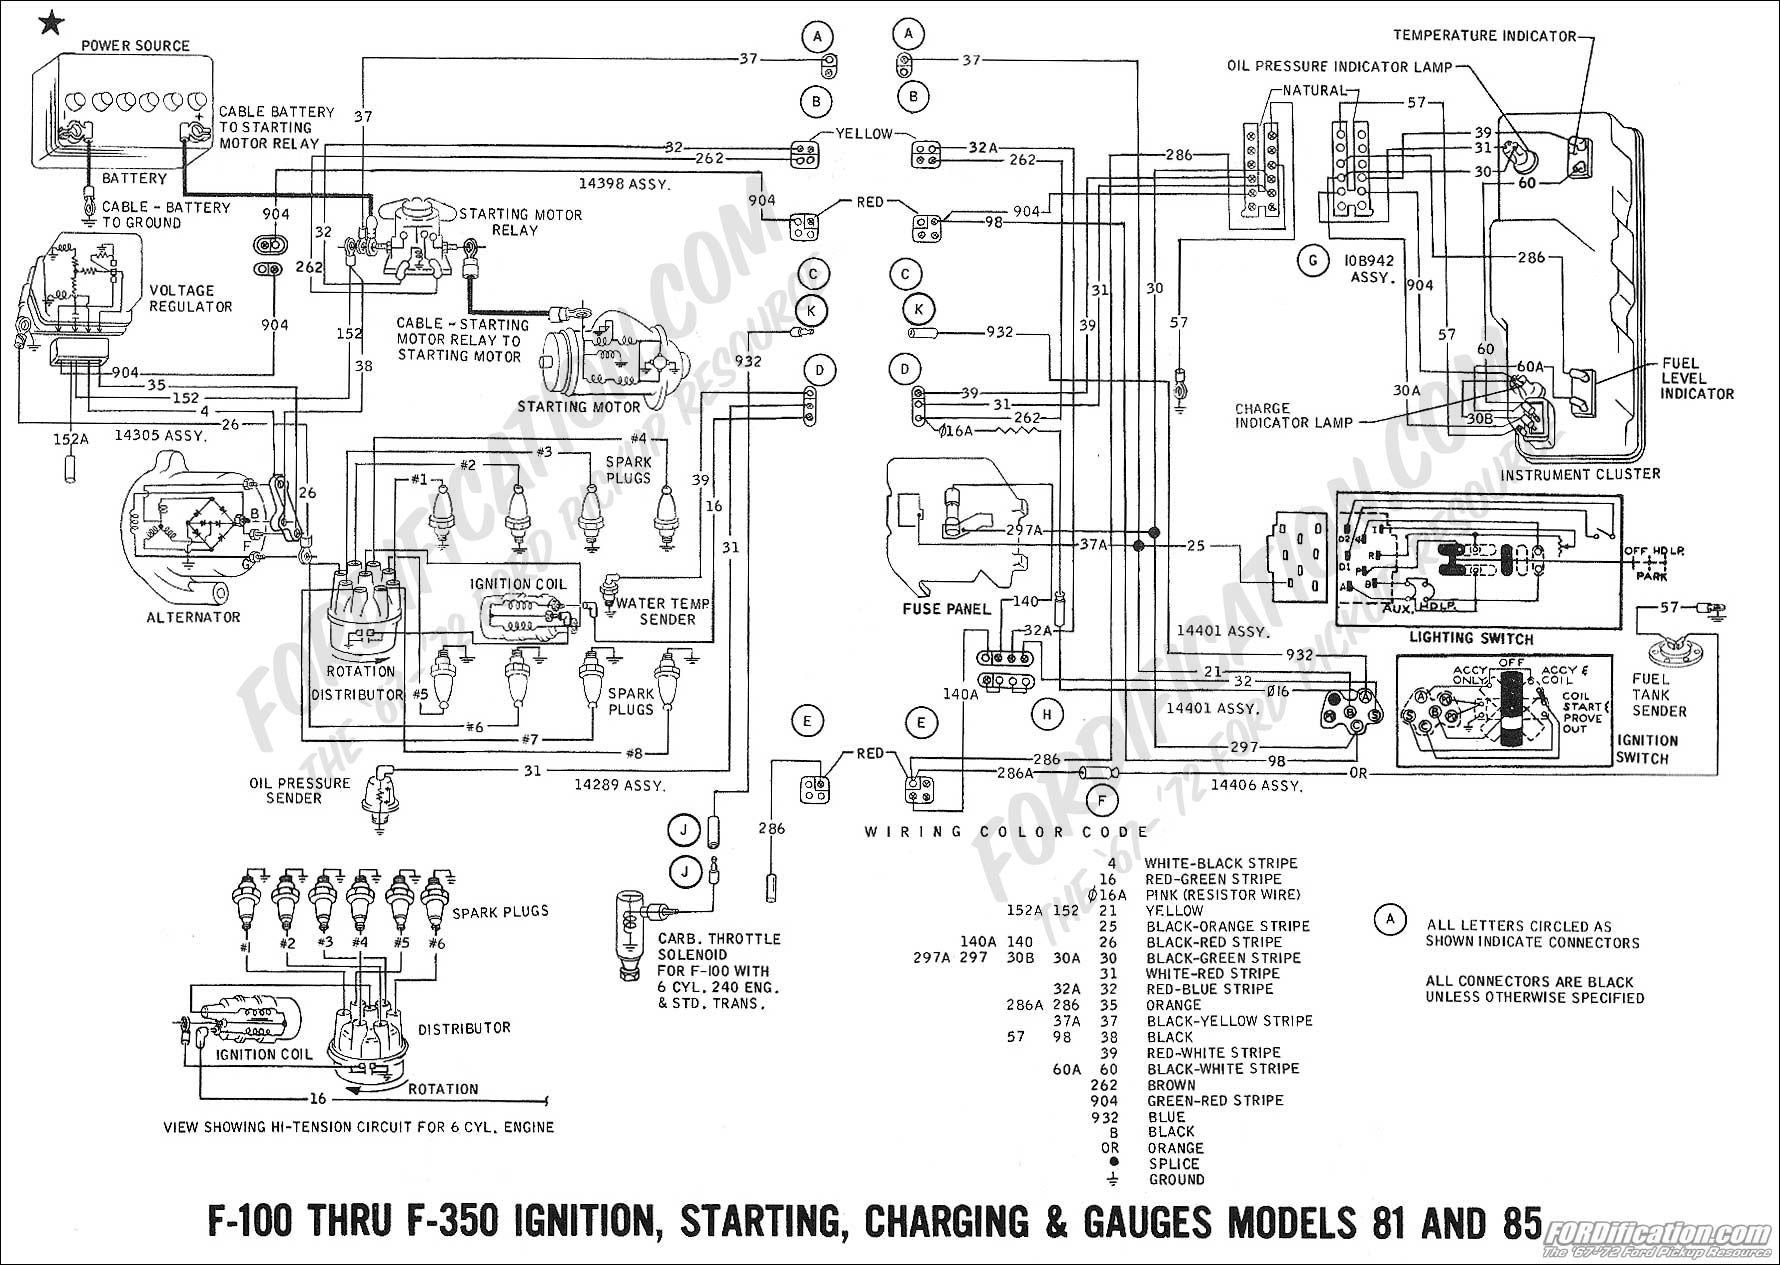 95 Ford Mustang Fuse Box Diagram Golden Schematic 1995 1968 Wiring Enthusiast Rh Rasalibre Co